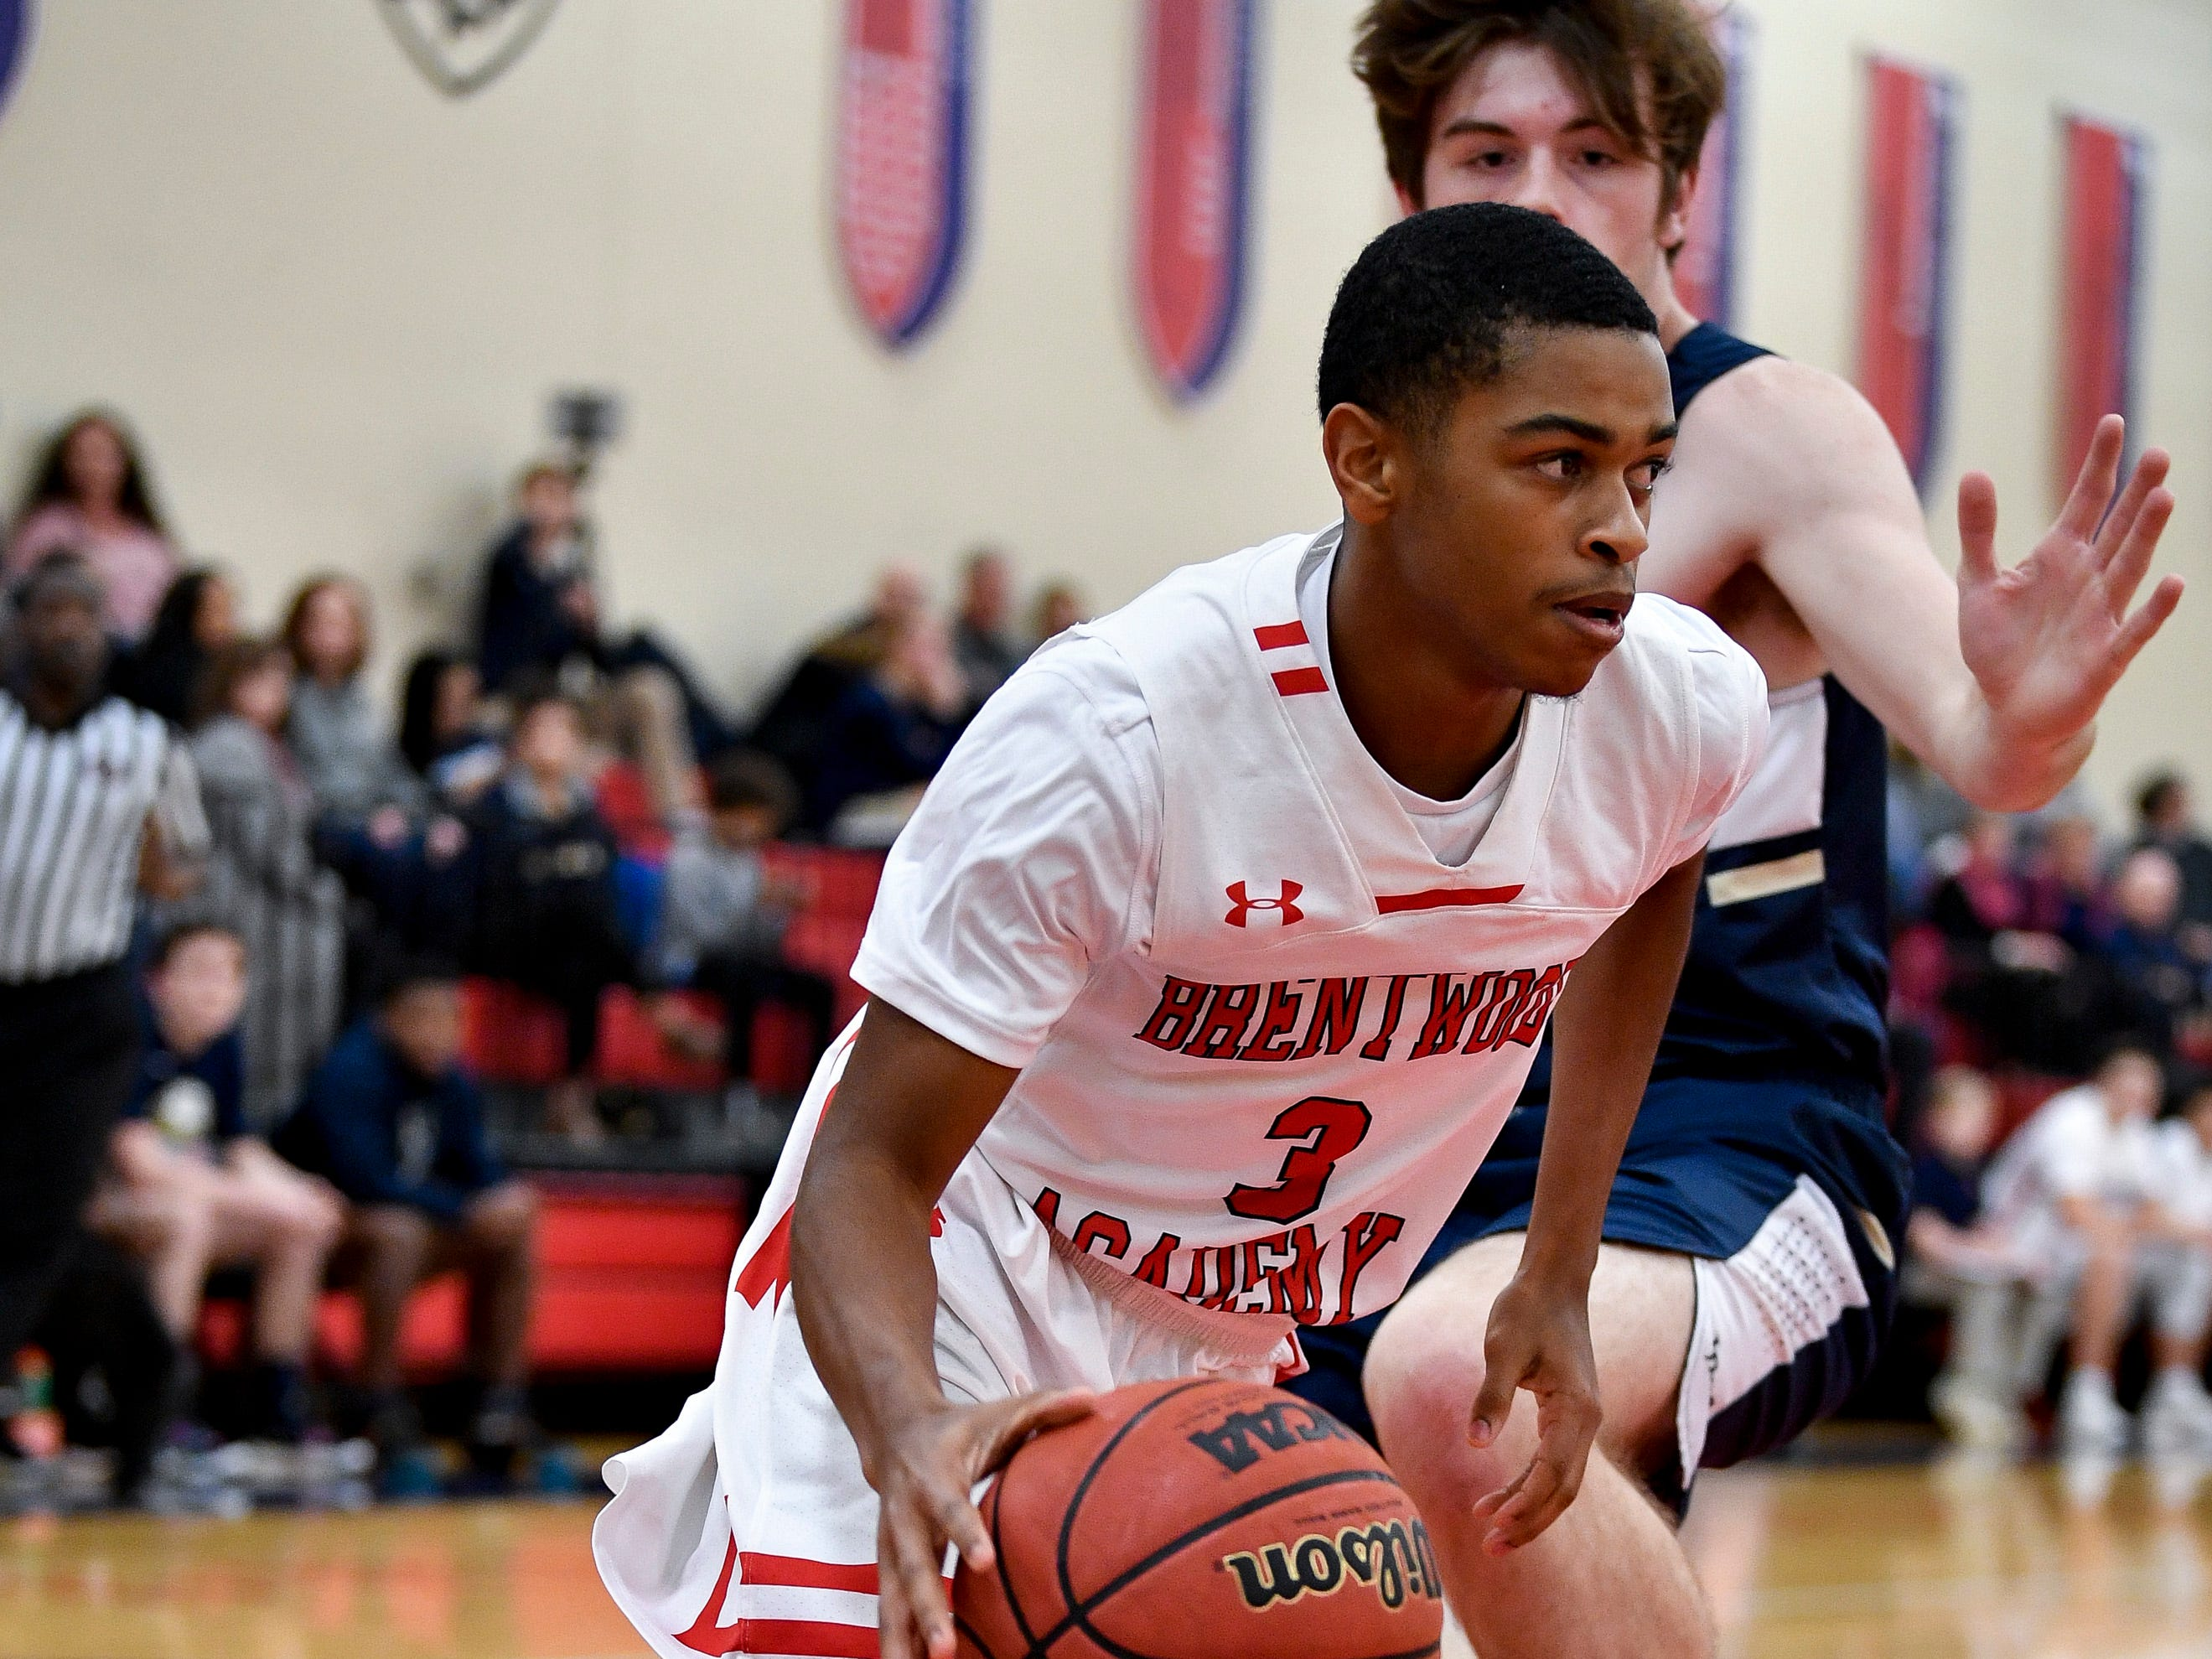 Brentwood Academy's Bj Davis (3) advances past Pope John Paul II's Judson Murray (32) during the first half at Brentwood Academy in Brentwood, Tenn., Friday, Jan. 4, 2019.